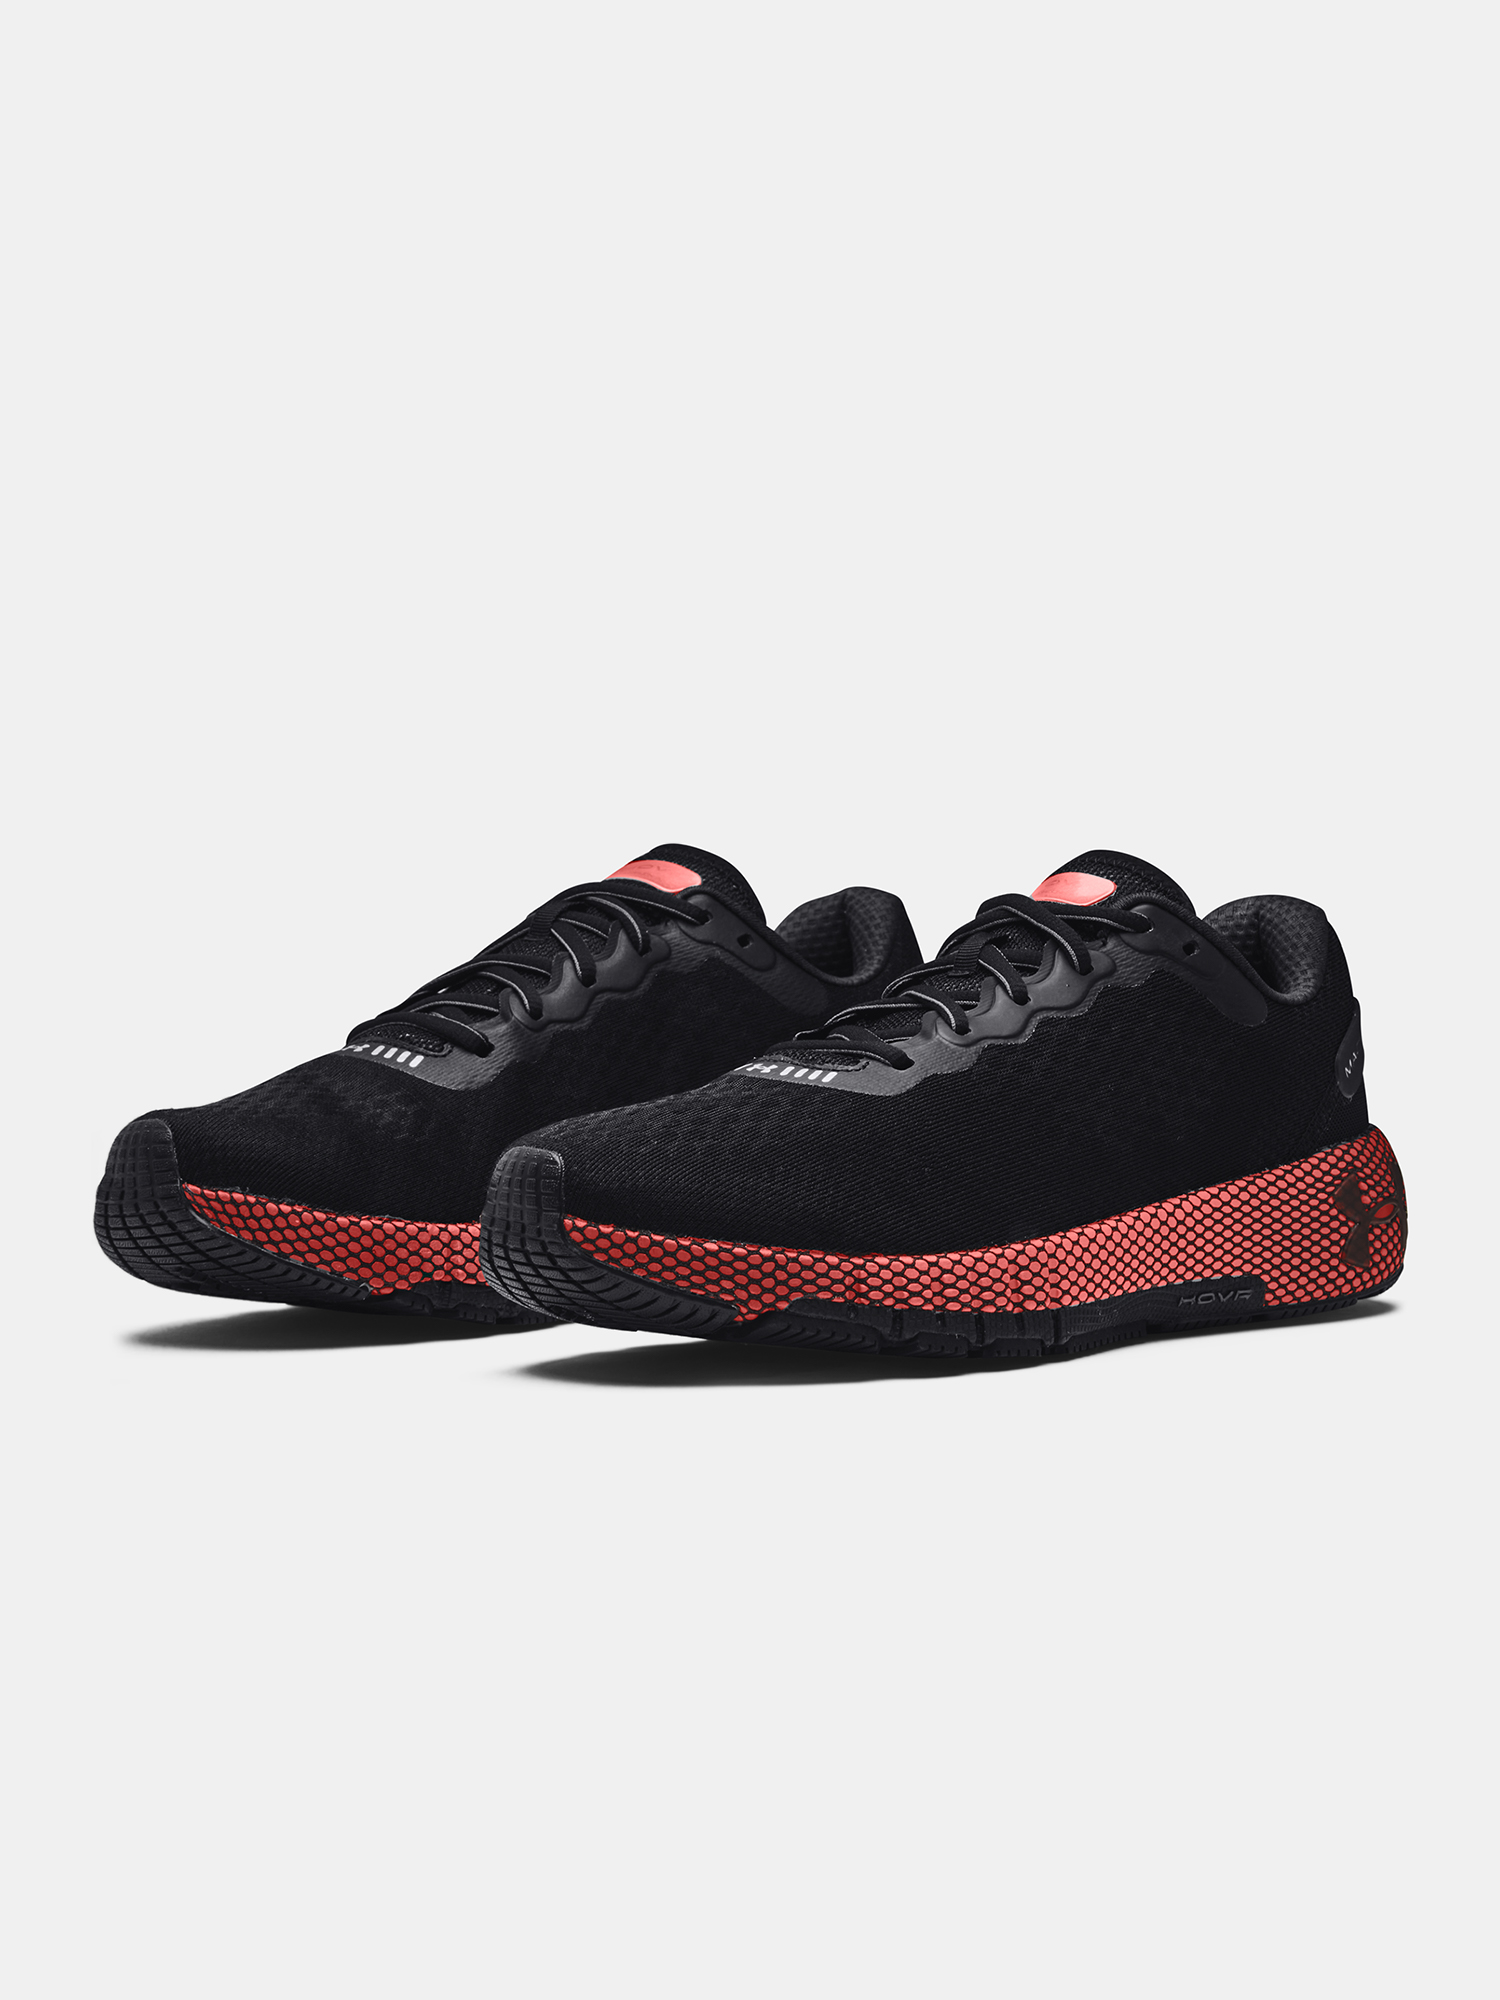 Boty Under Armour HOVR Machina 2 CLRSHFT-BLK (3)